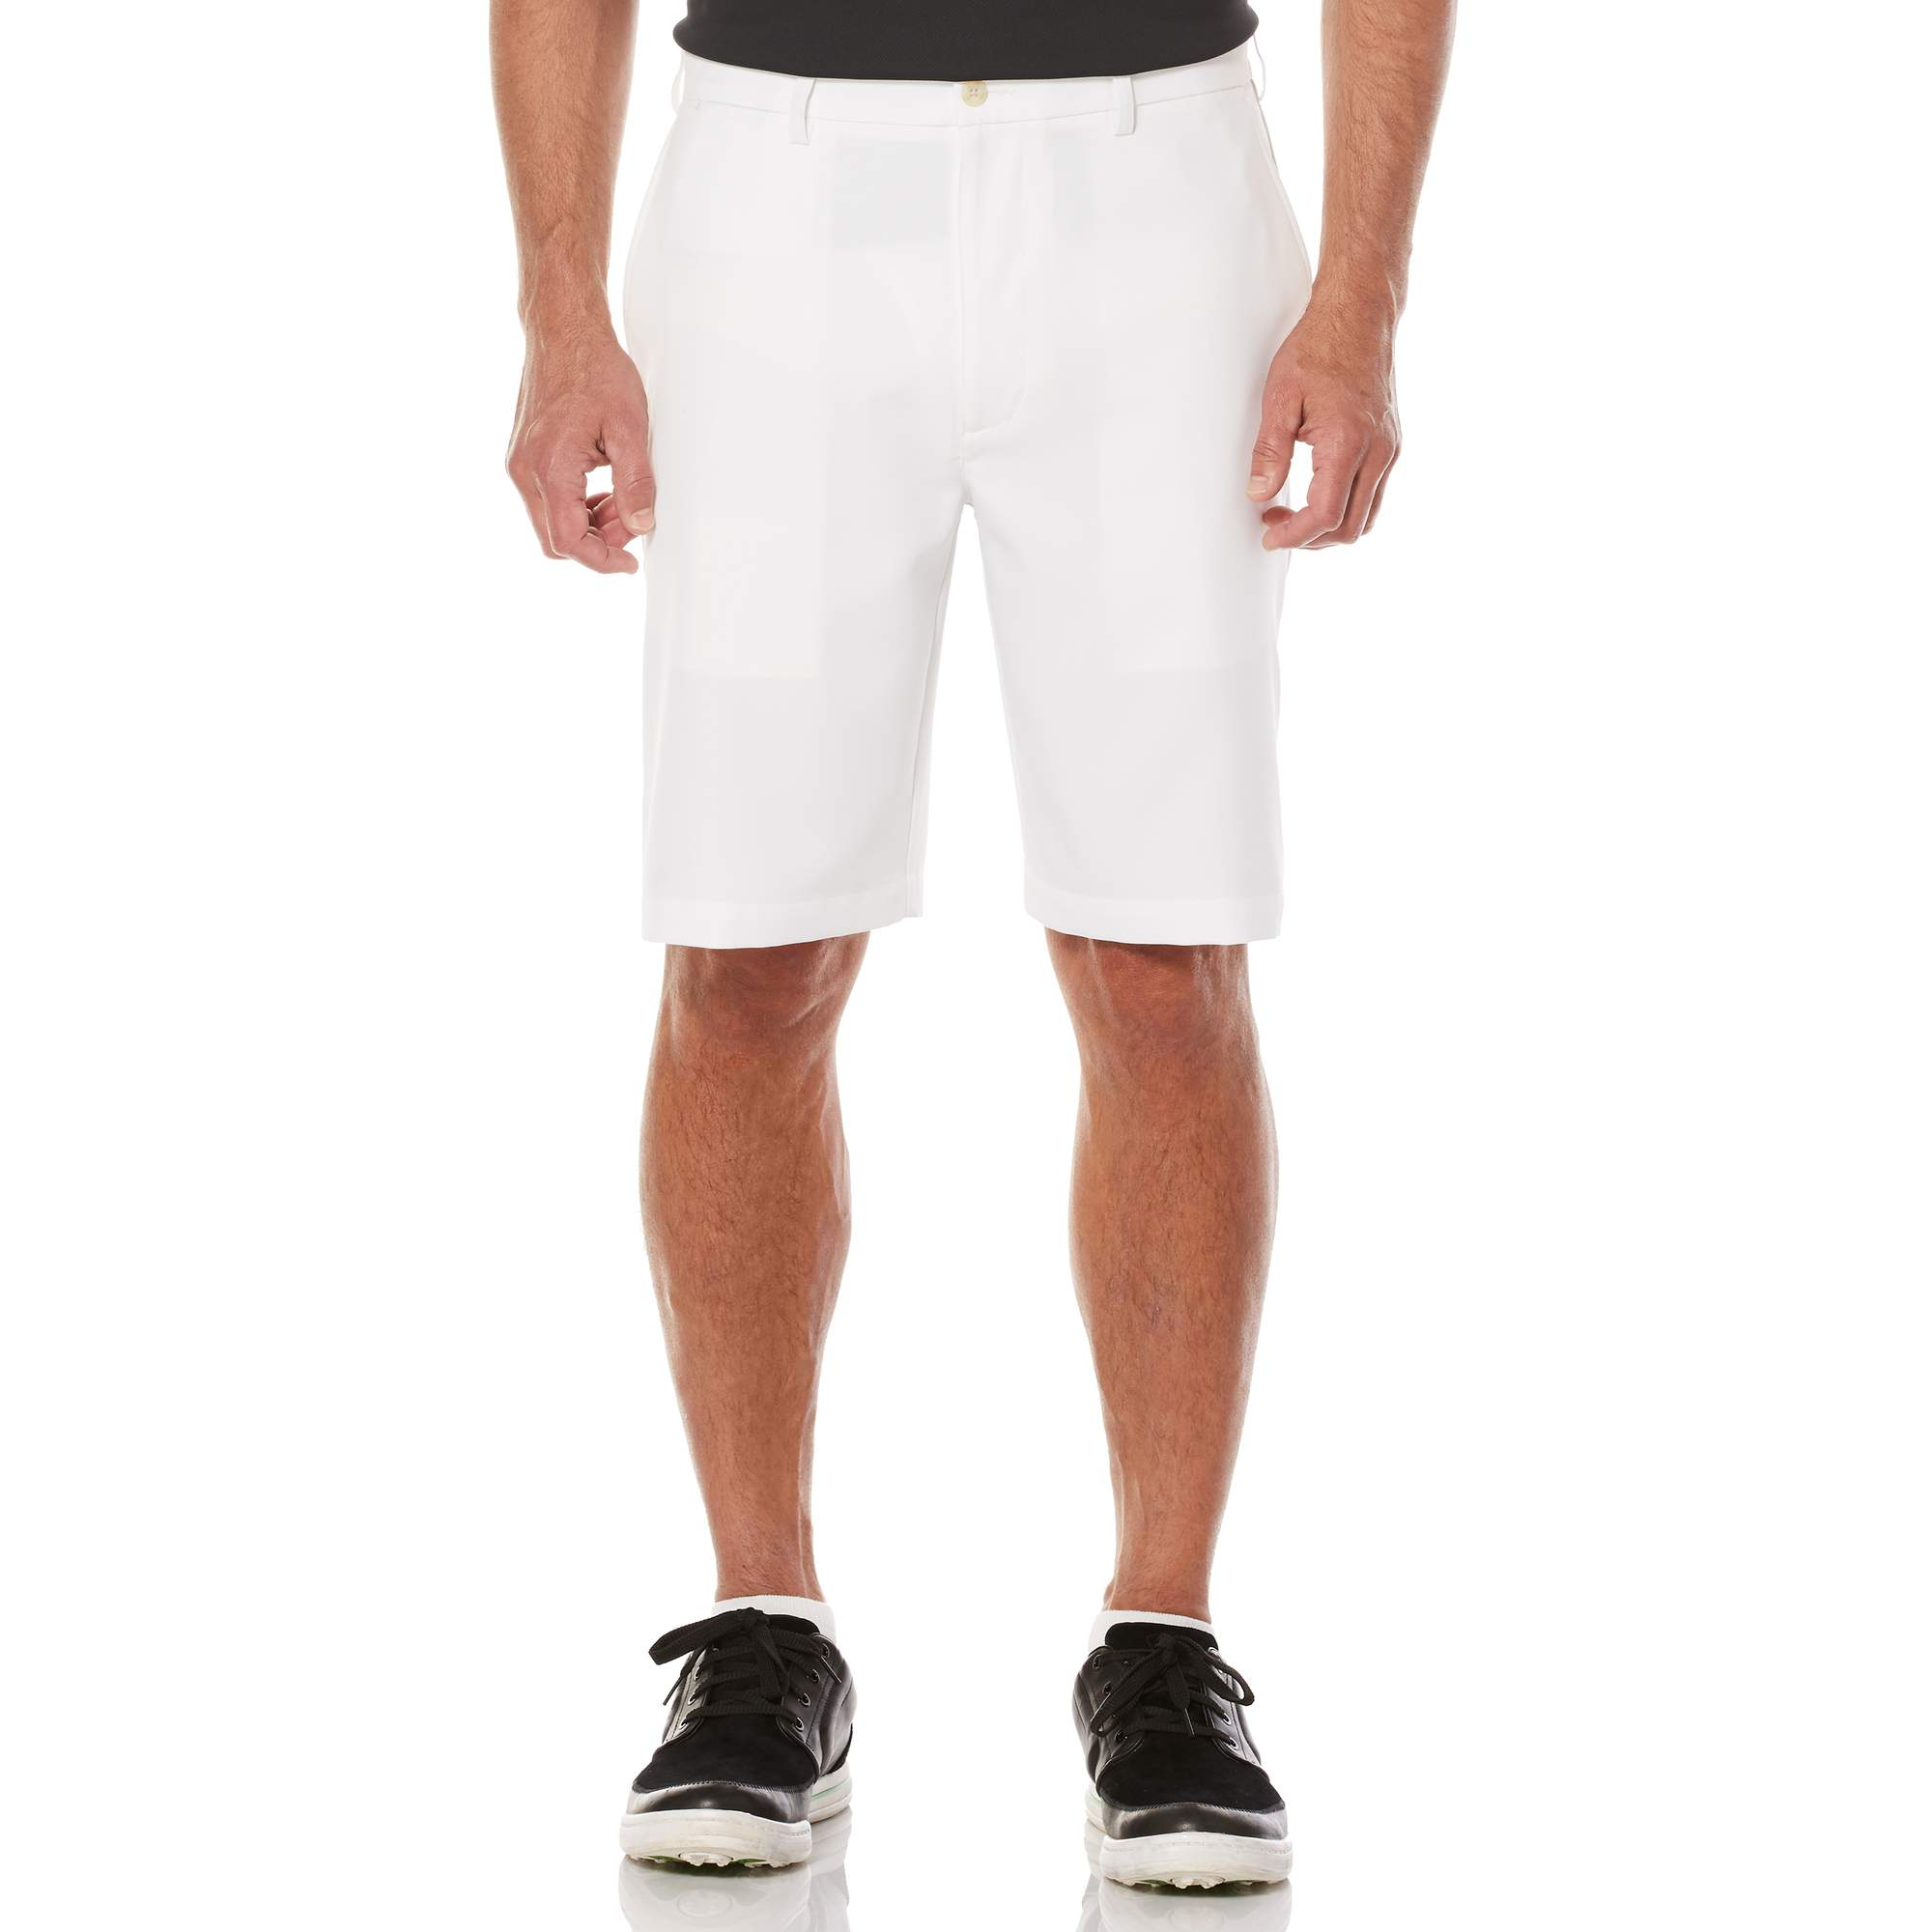 Men's Performance Flat Front Active Flex Waistband Four Way Stretch Golf Shorts by